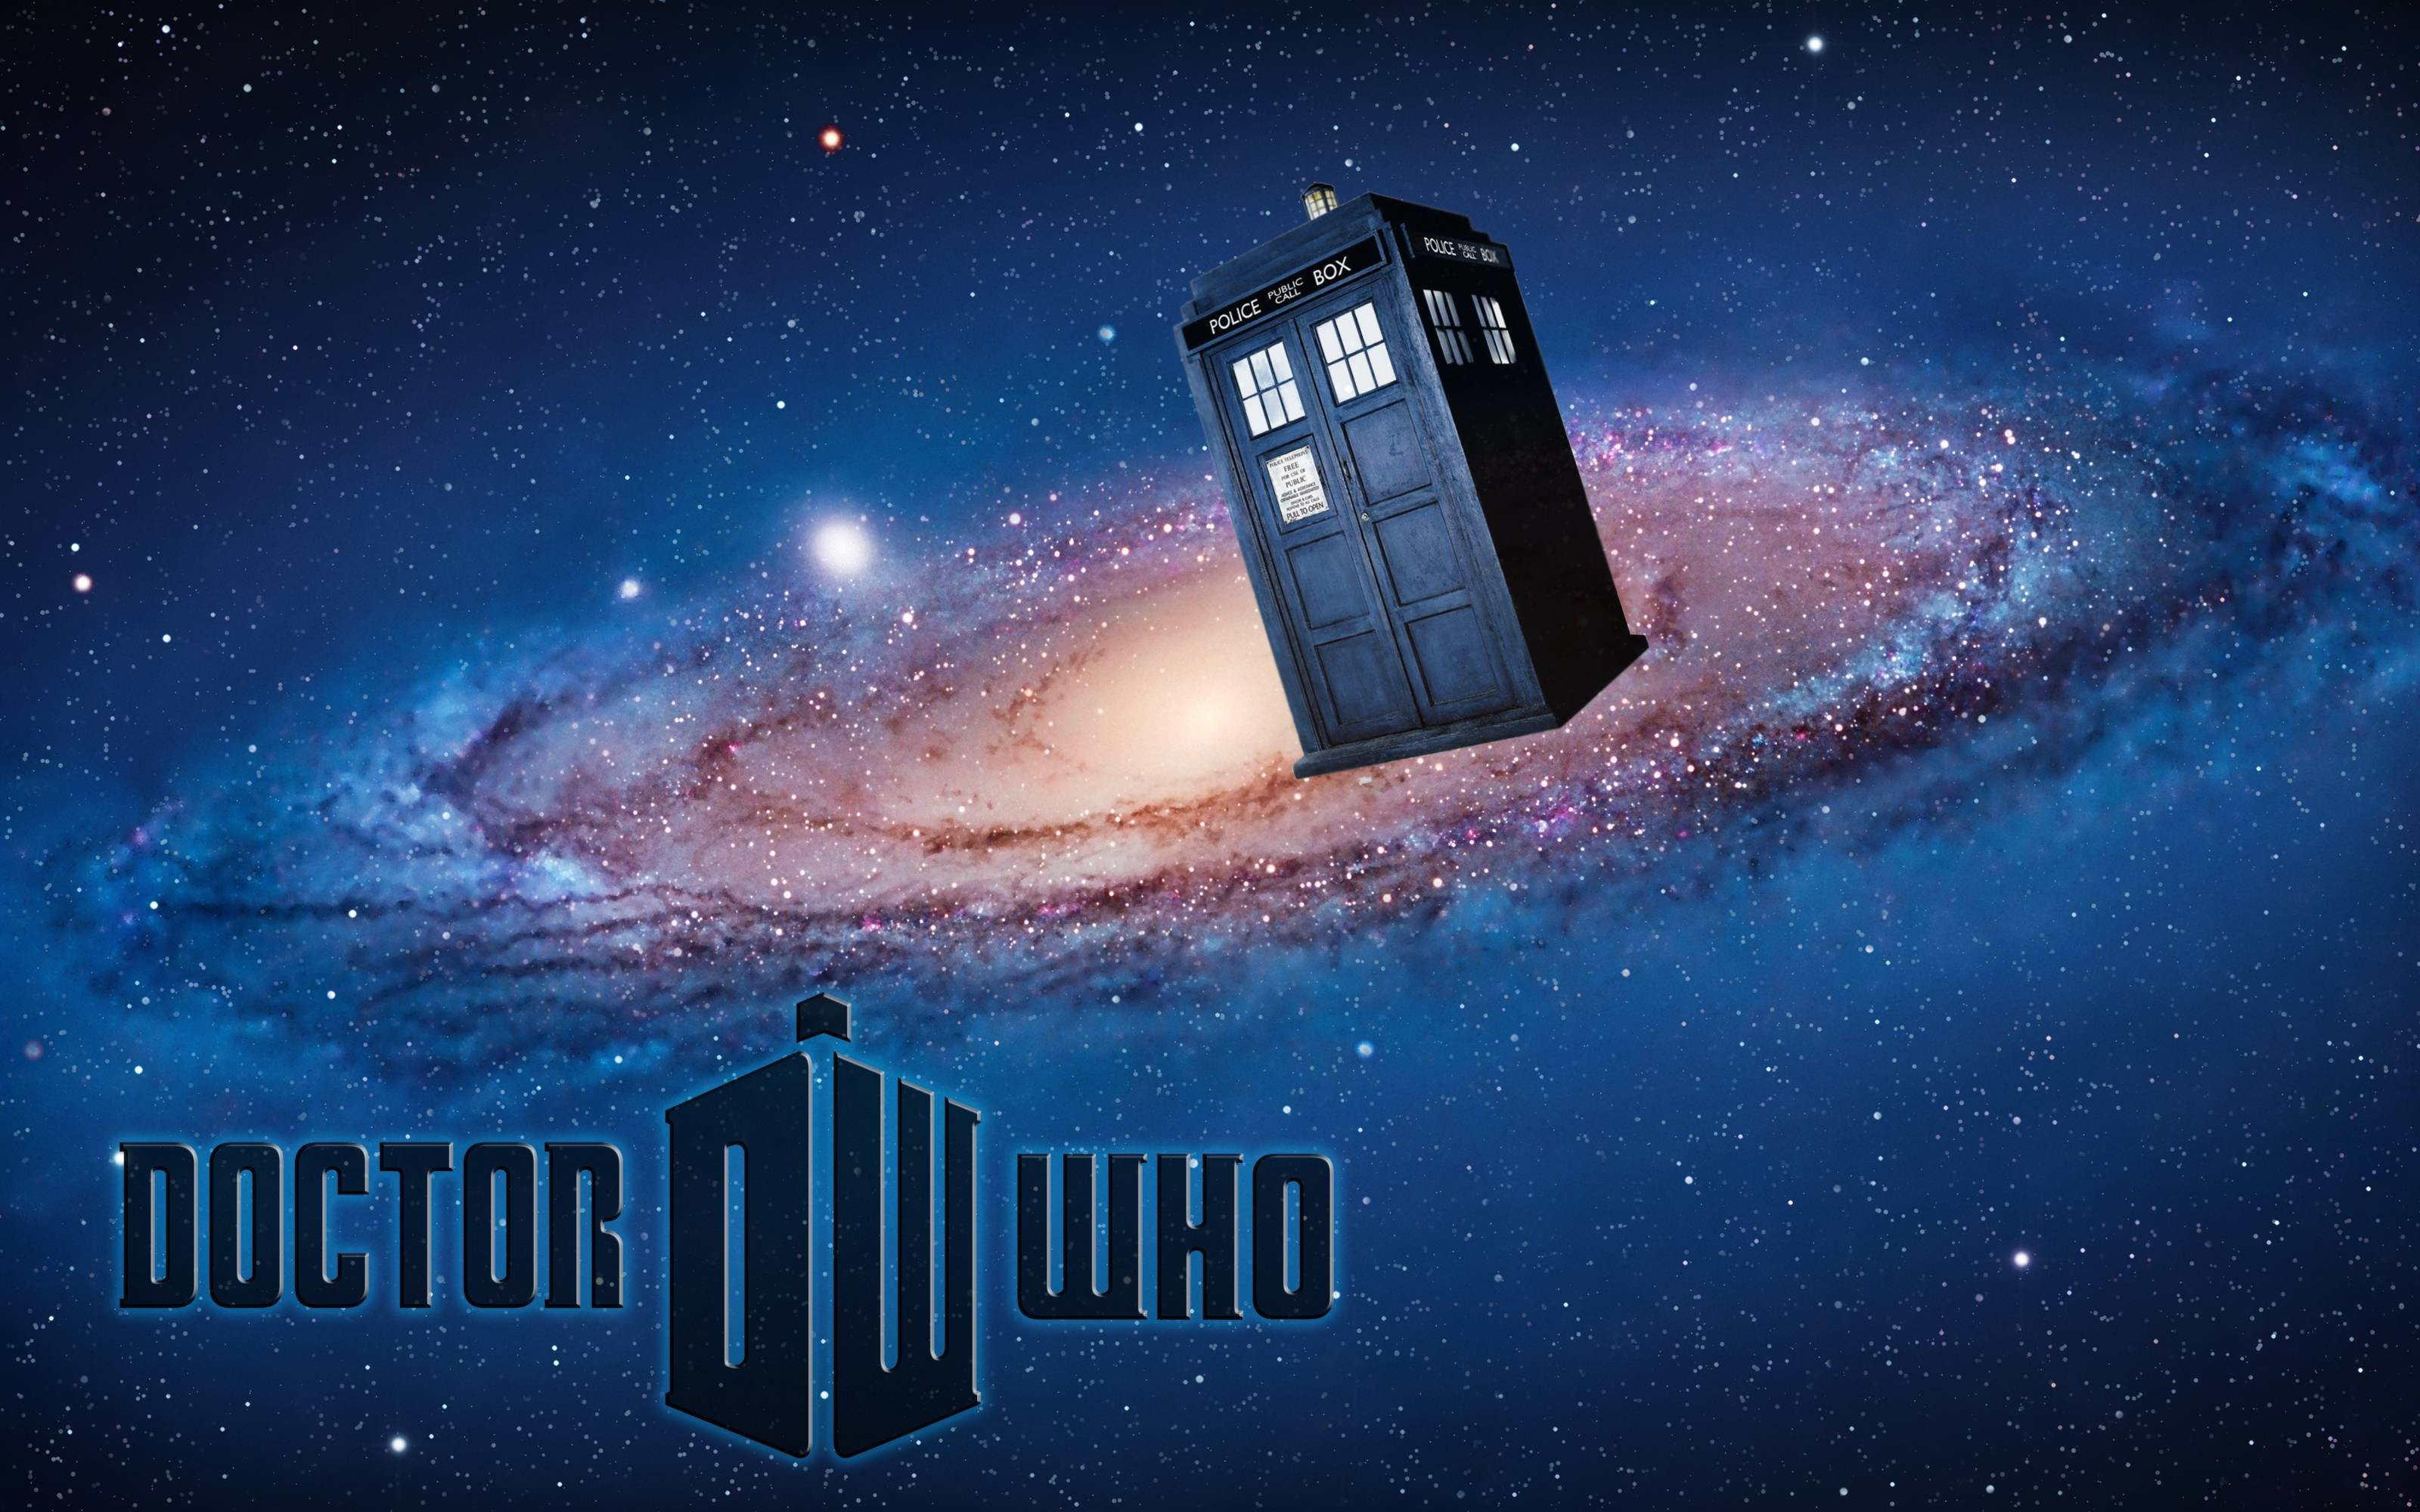 Res: 3200x2000, Doctor Who TARDIS Wallpaper (Mac) by iPhoneWallpapers on DeviantArt